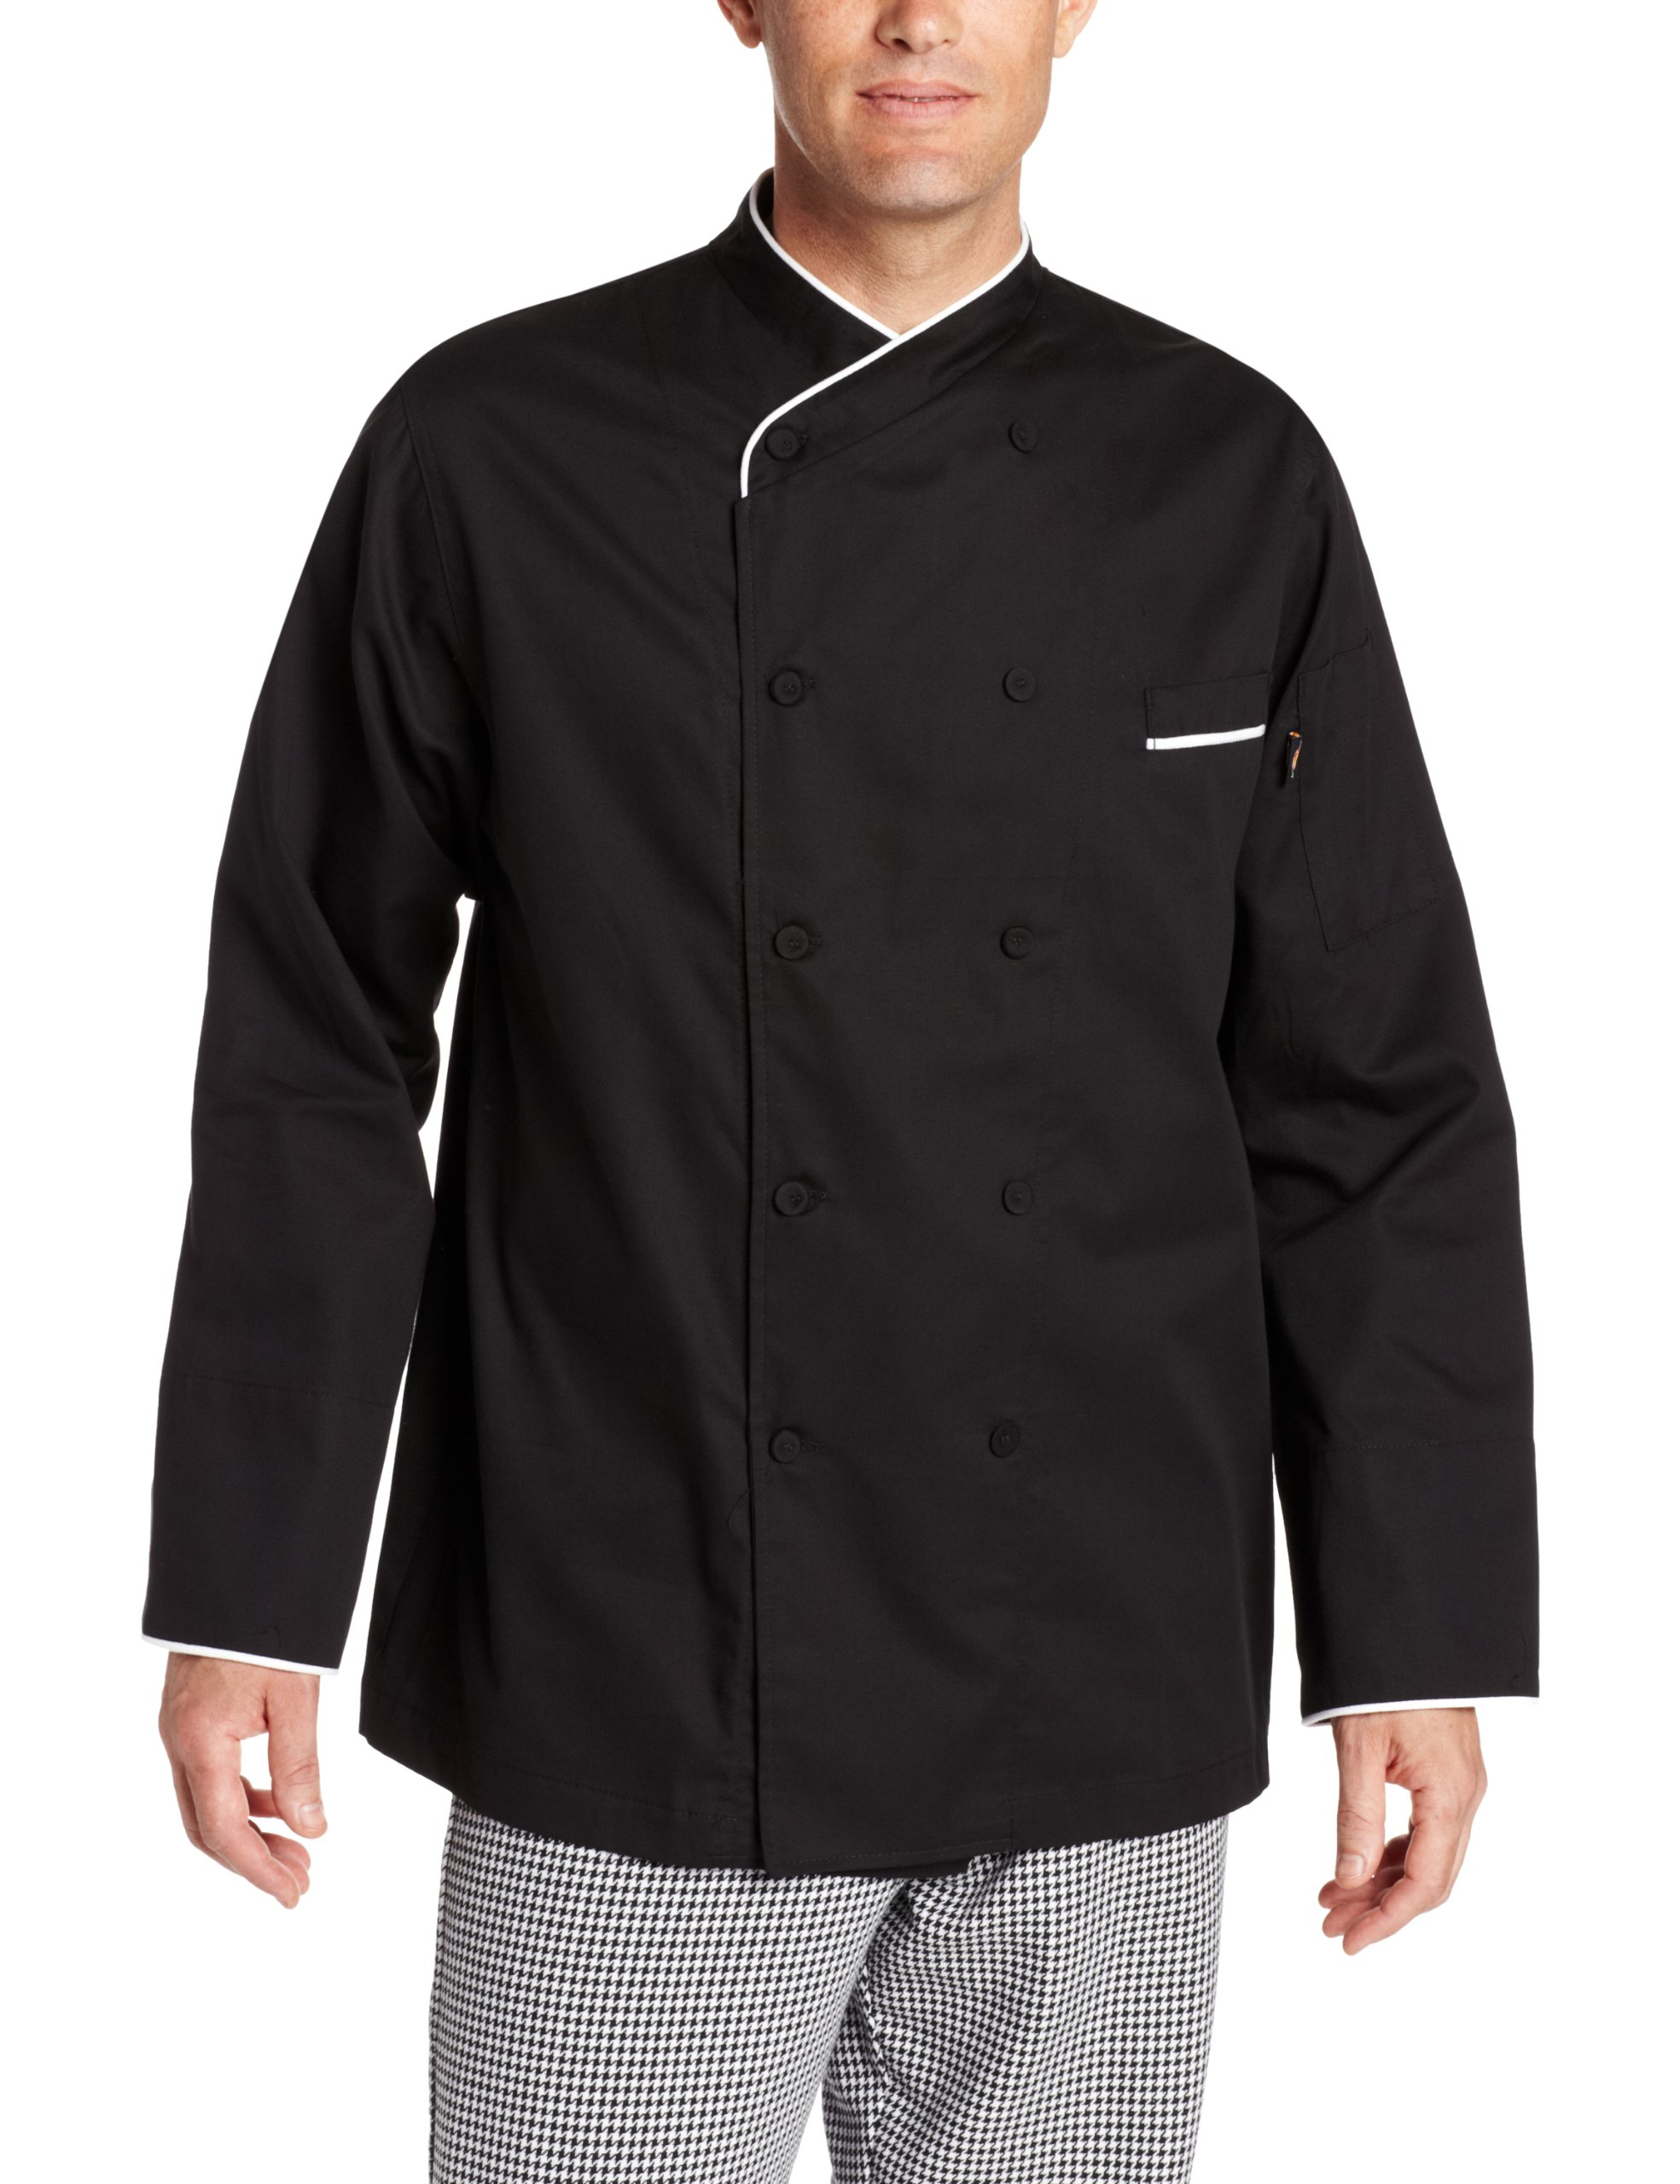 Dickies Men's Black Egyptian Cotton Chef Coat, Black, 3X-Large